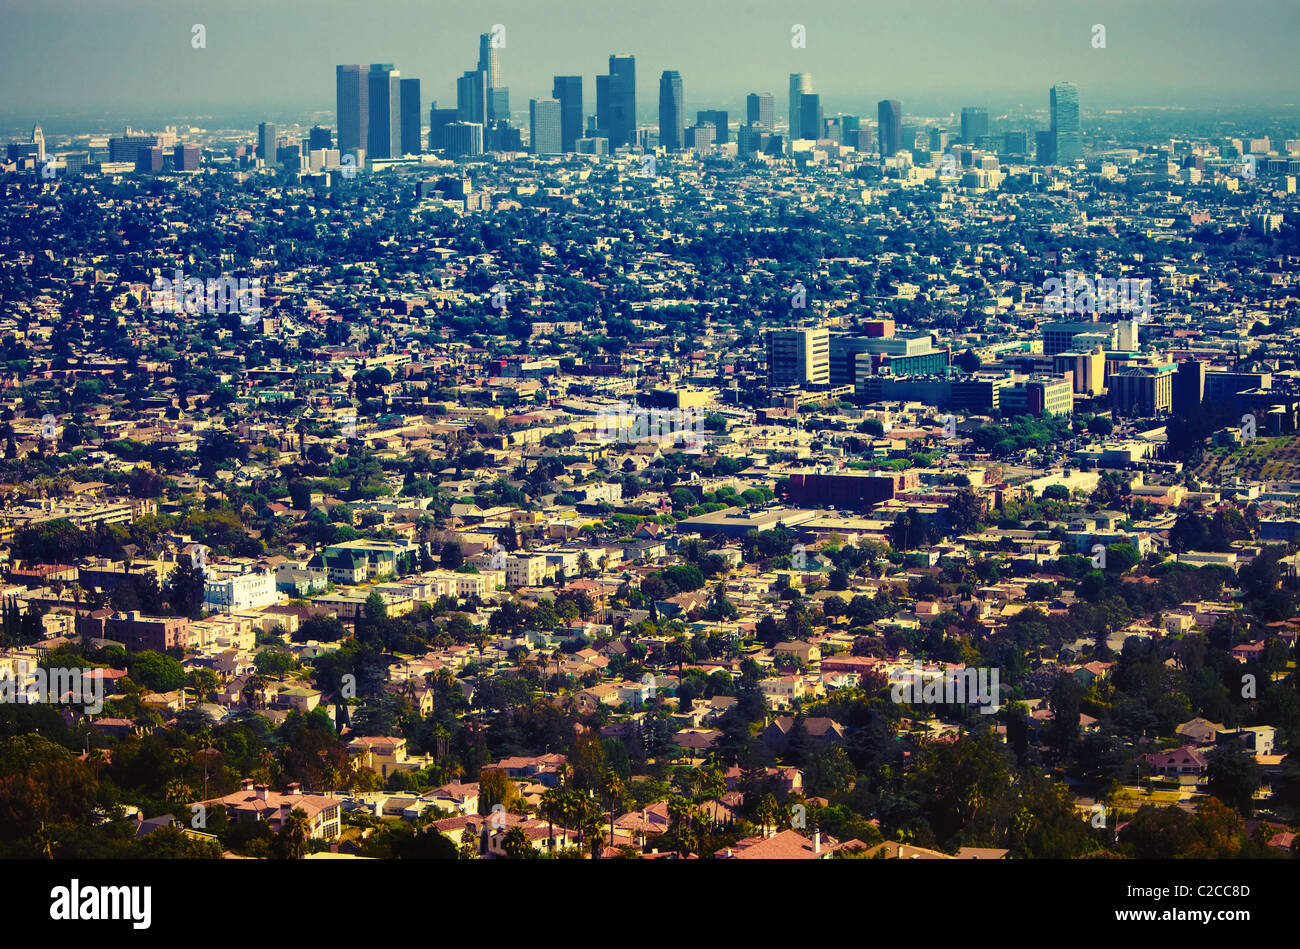 Los Angeles urban sprawl & downtown skyline as seen from a distance from scenic overlook at Griffith Observatory - Stock Image